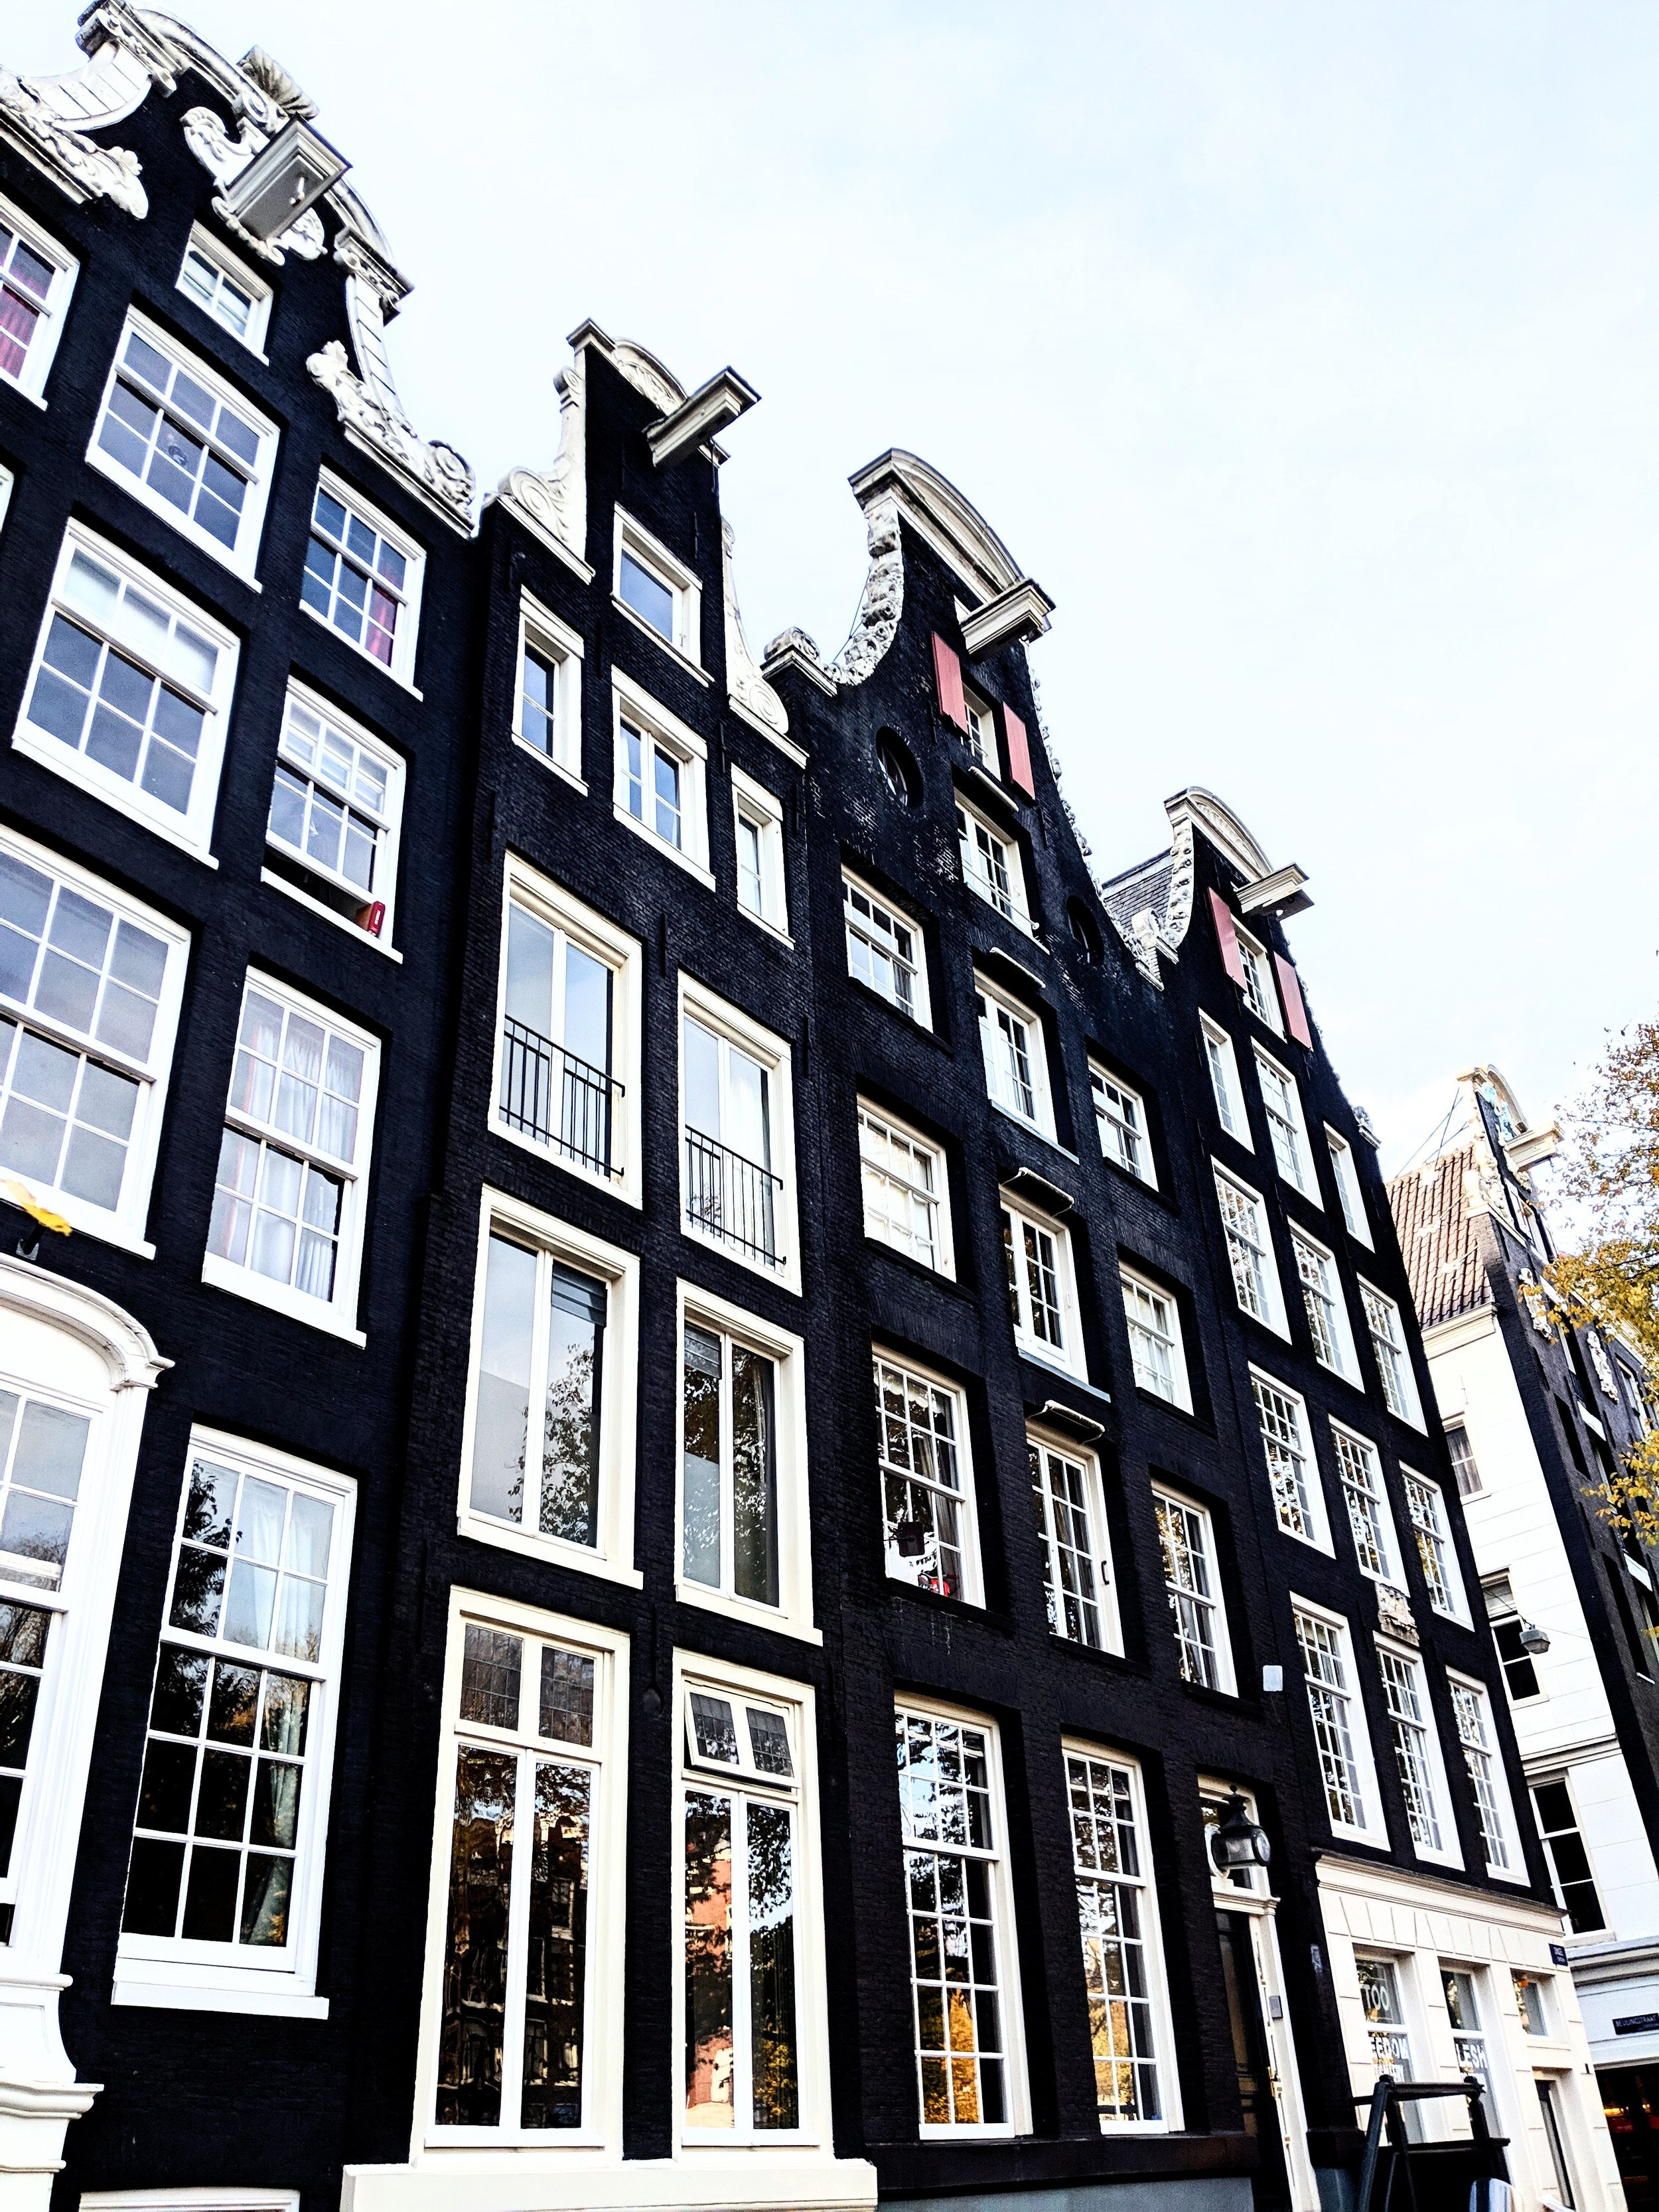 Amsterdam - Image by peastyle